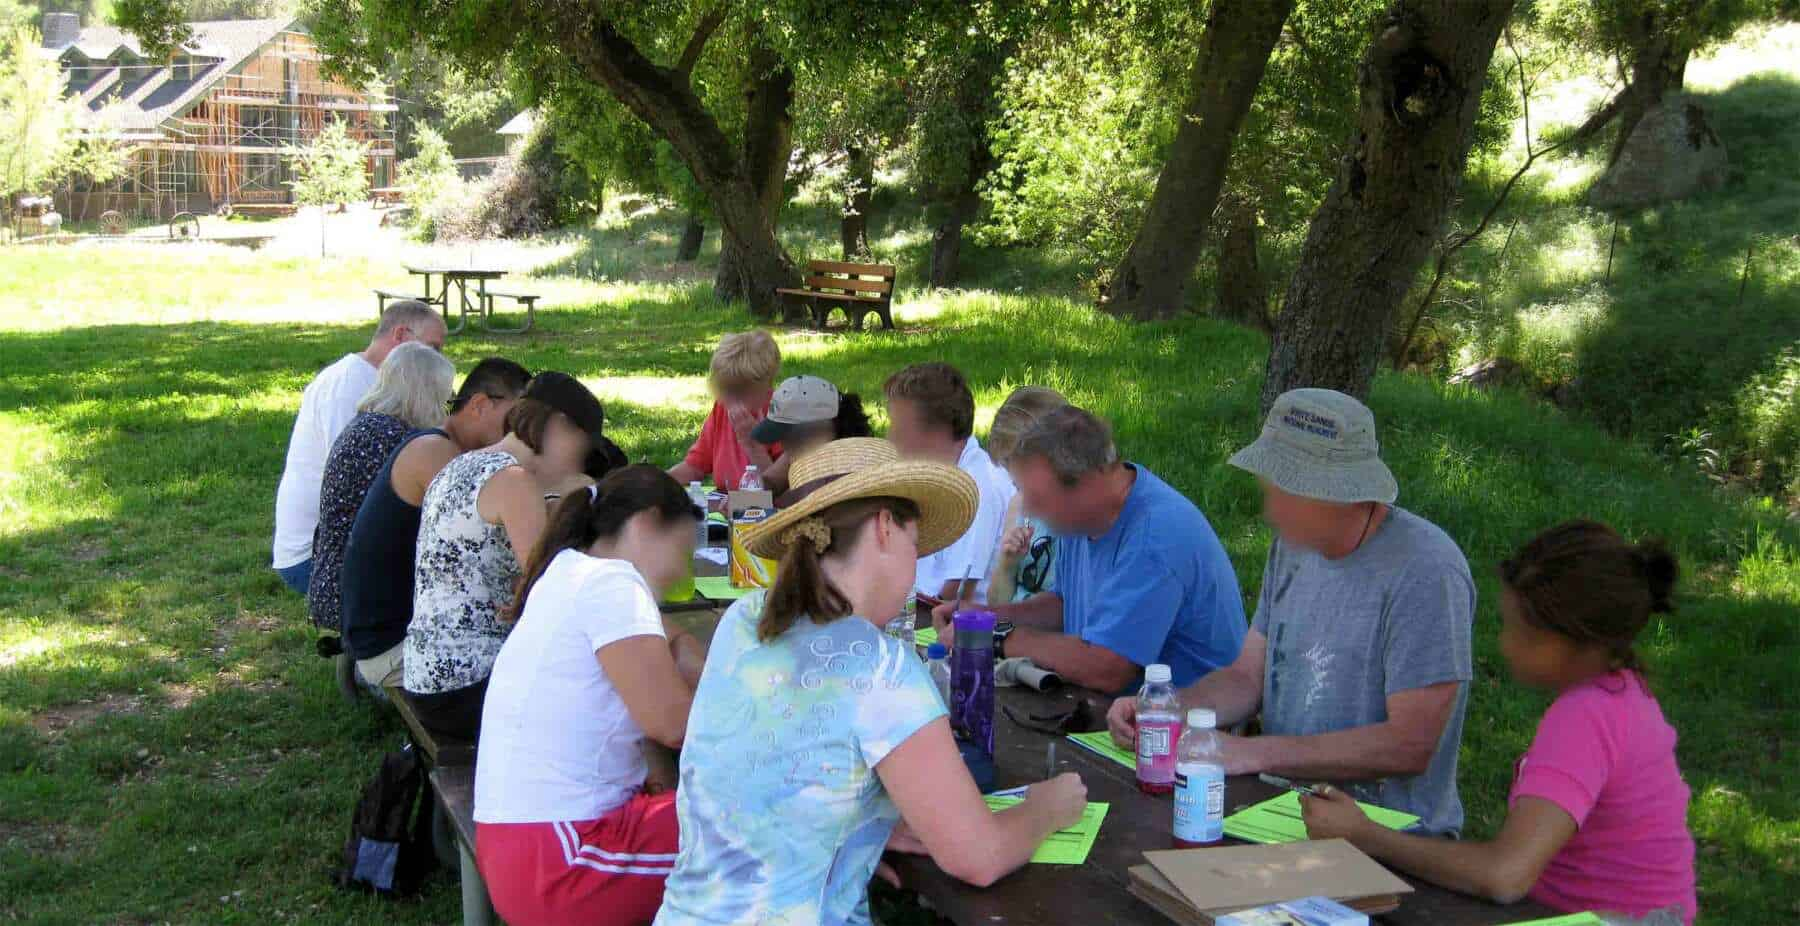 16 people take part in a brainstorming session at a picnic table in a grassy field under large oak trees.